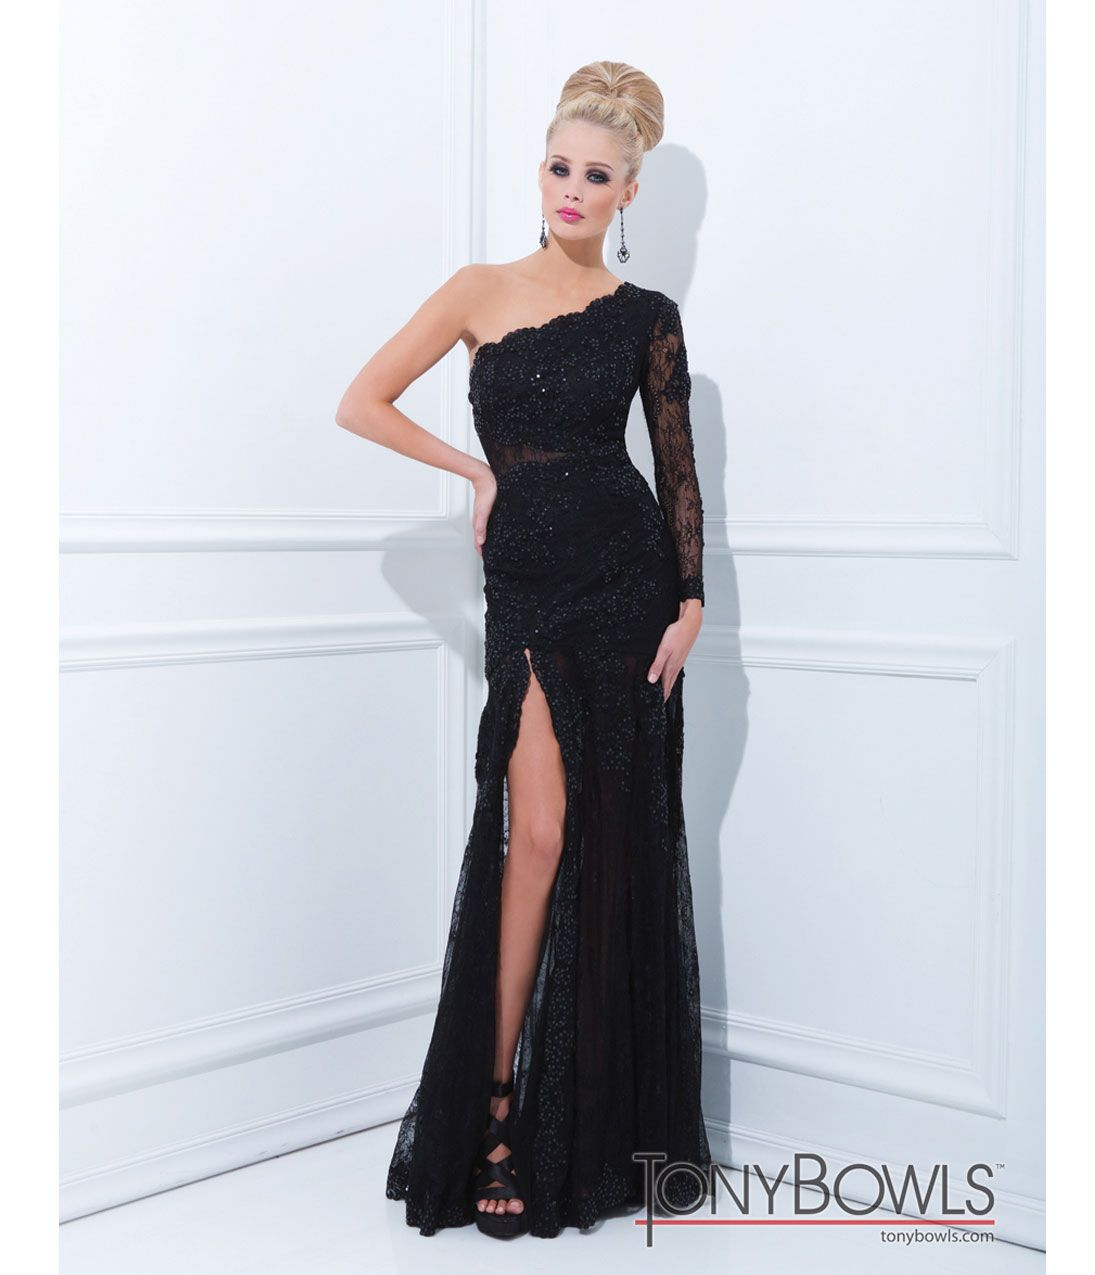 Tony bowls prom dresses black mesh u sequin one shoulder prom